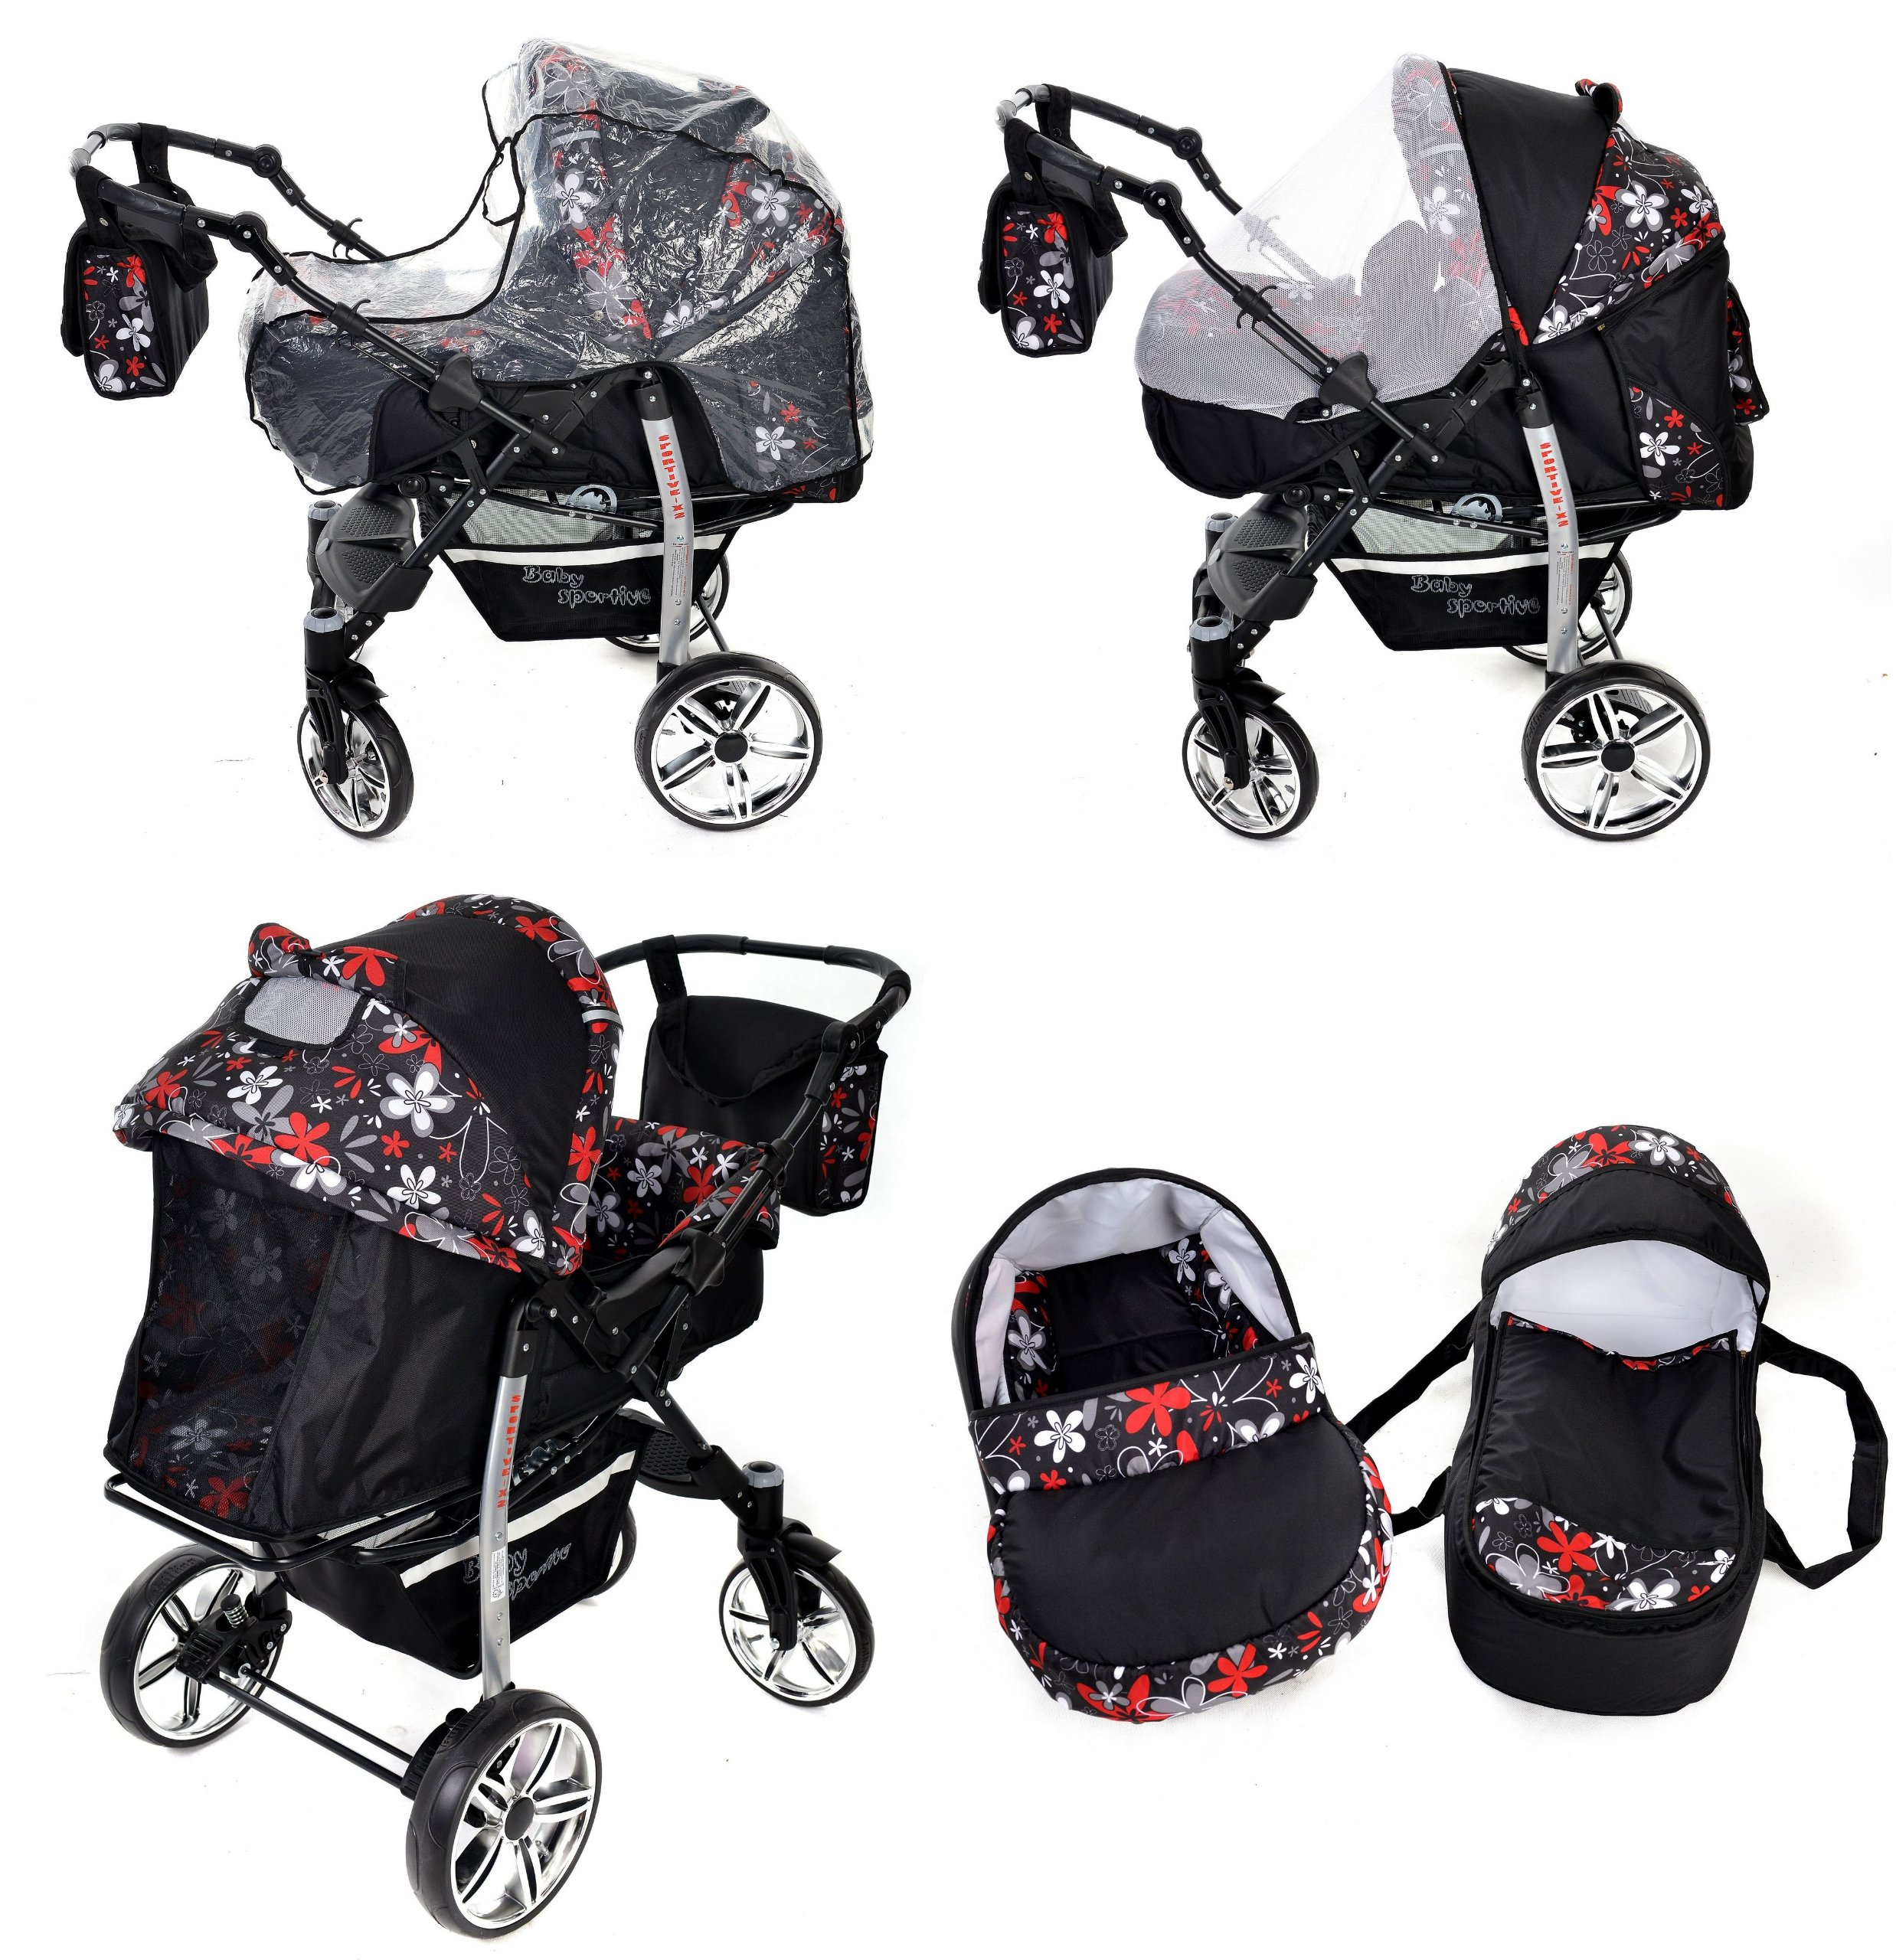 Sportive X2, 3-in-1 Travel System incl. Baby Pram with Swivel Wheels, Car Seat, Pushchair & Accessories (3-in-1 Travel System, Black & Small Flowers) Baby Sportive 3 in 1 Travel System All in One Set - Pram, Car Carrier Seat and Sport Buggy + Accessories: carrier bag, rain protection, mosquito net, changing mat, removable bottle holder and removable tray for your child's bits and pieces Suitable from birth, Easy Quick Folding System; Large storage basket; Turnable handle bar that allows to face or rear the drive direction; Quick release rear wheels for easy cleaning after muddy walks Front lockable 360o swivel wheels for manoeuvrability , Small sized when folded, fits into many small car trunks, Carry-cot with a removable hood, Reflective elements for better visibility 7